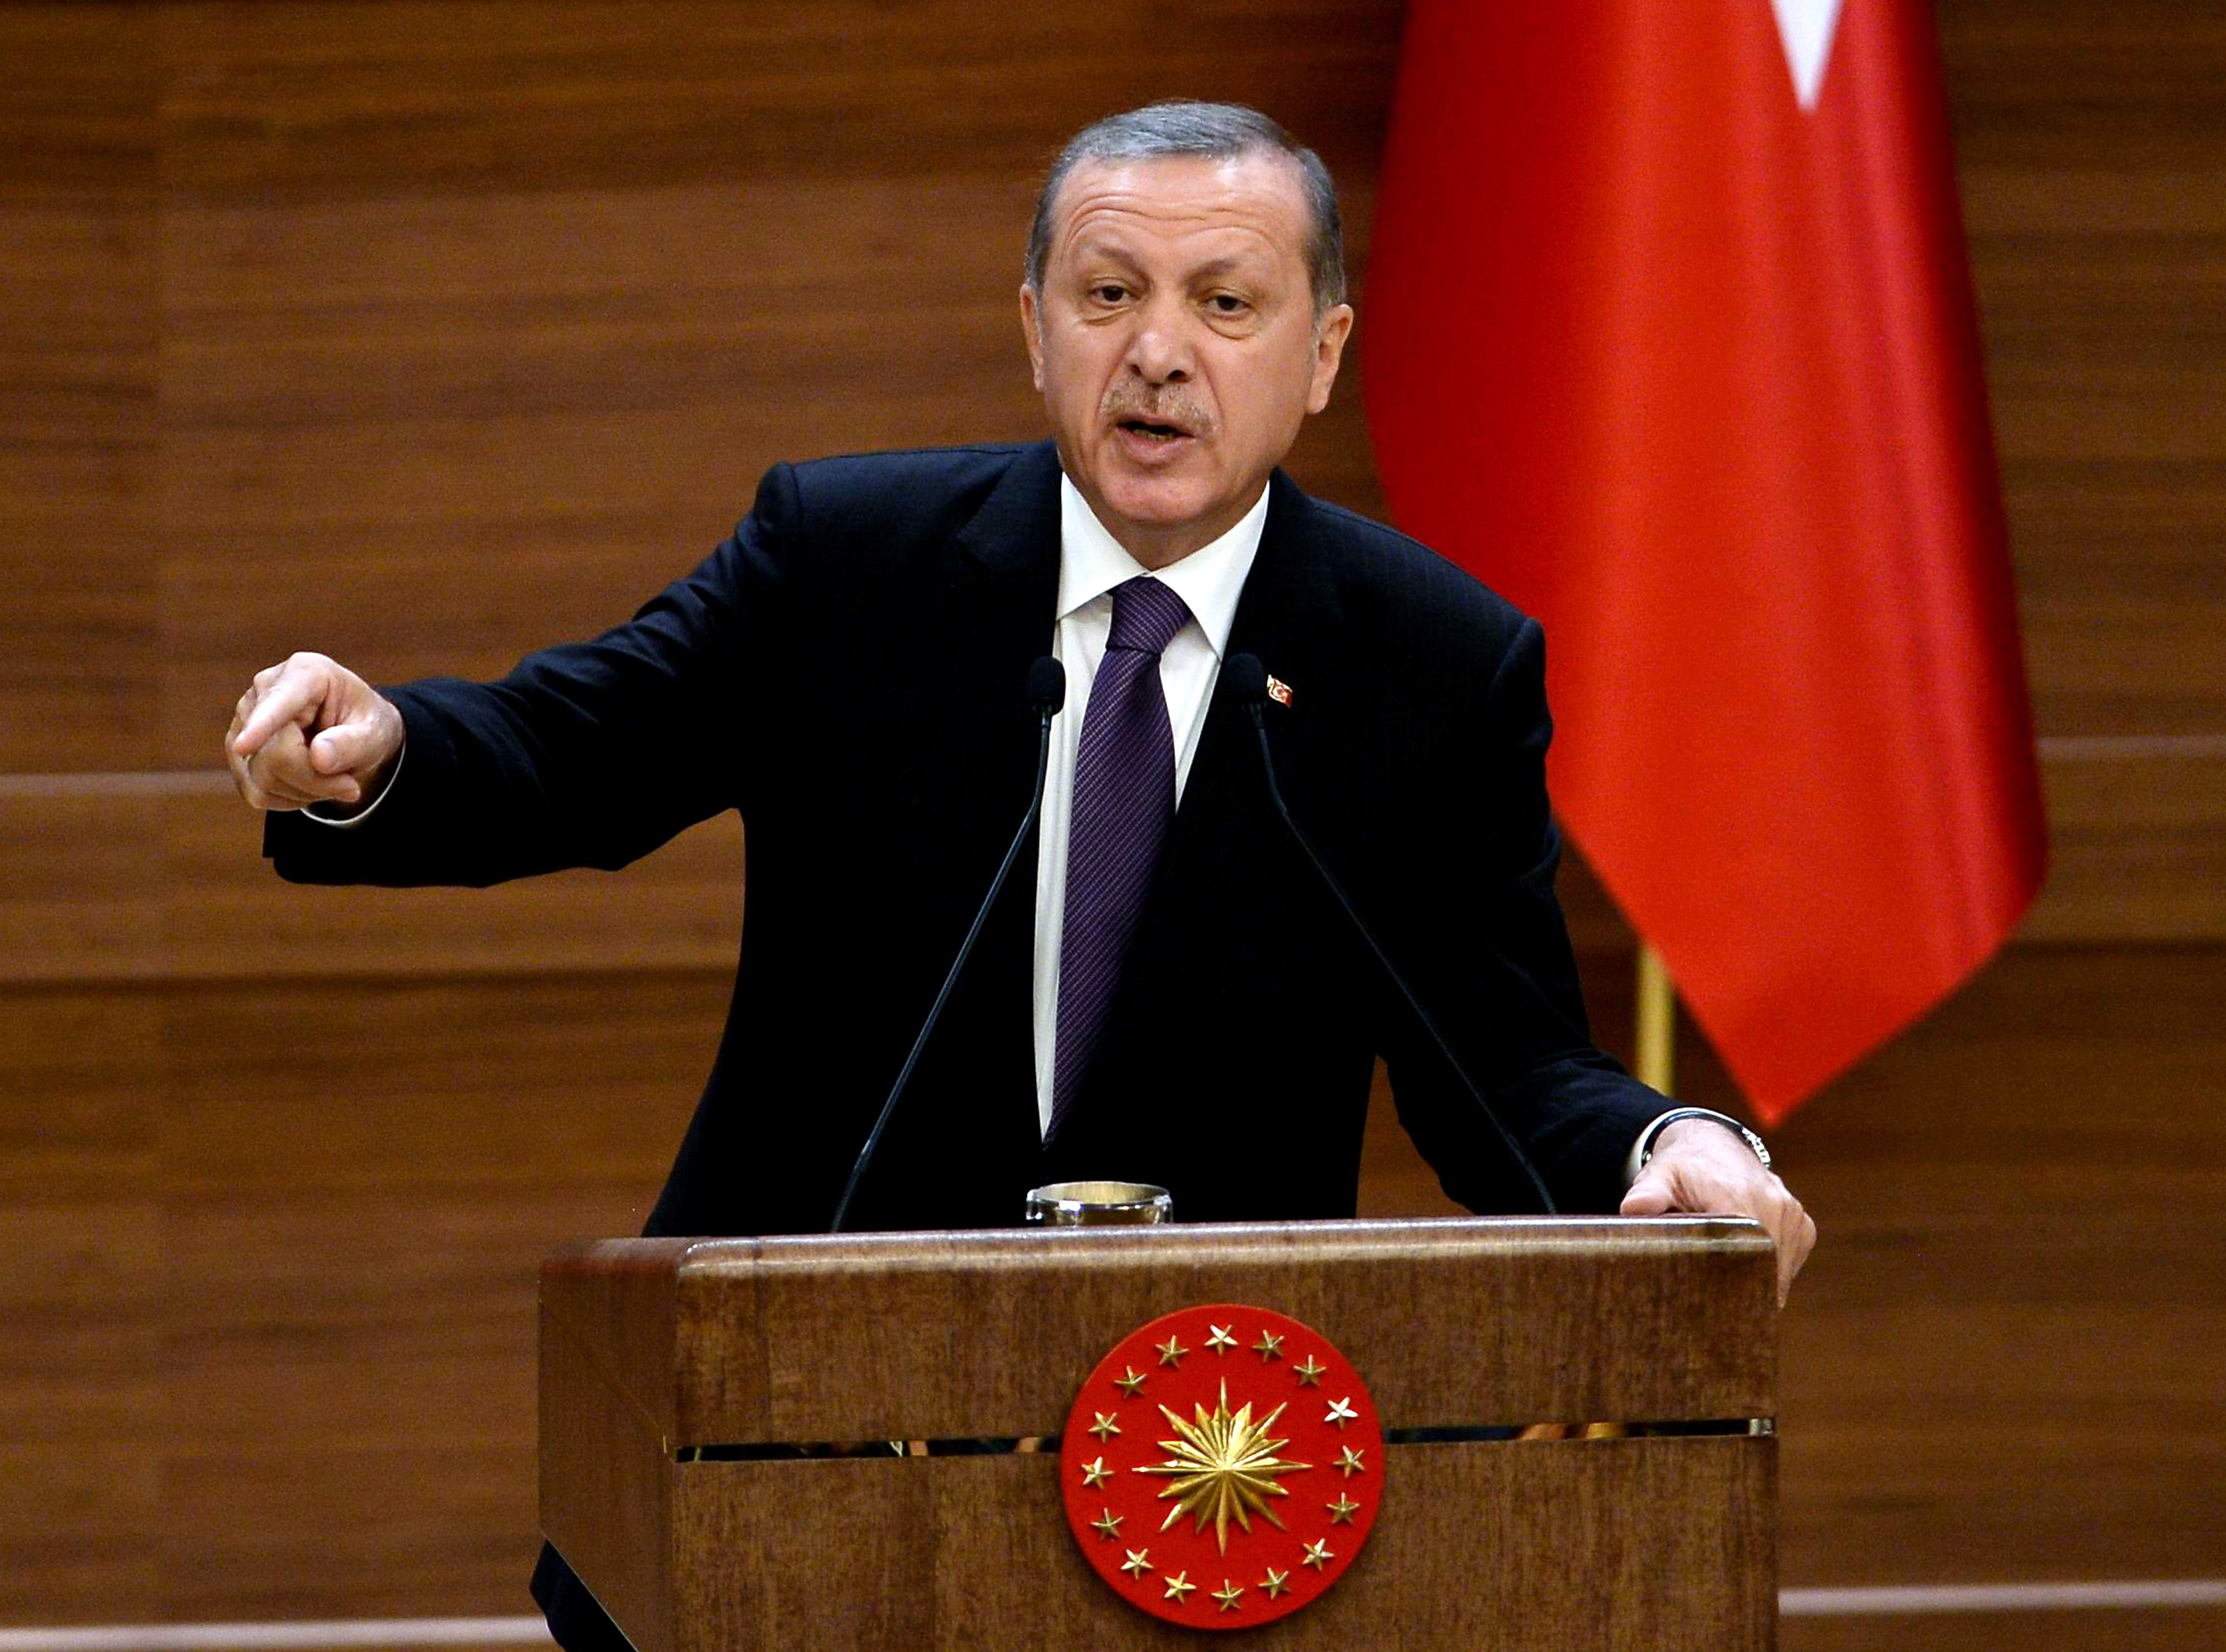 Turkish President Recep Tayyip Erdogan delivers a speech during the mukhtars meeting at the presidential palace in Ankara on Nov. 4, 2015.